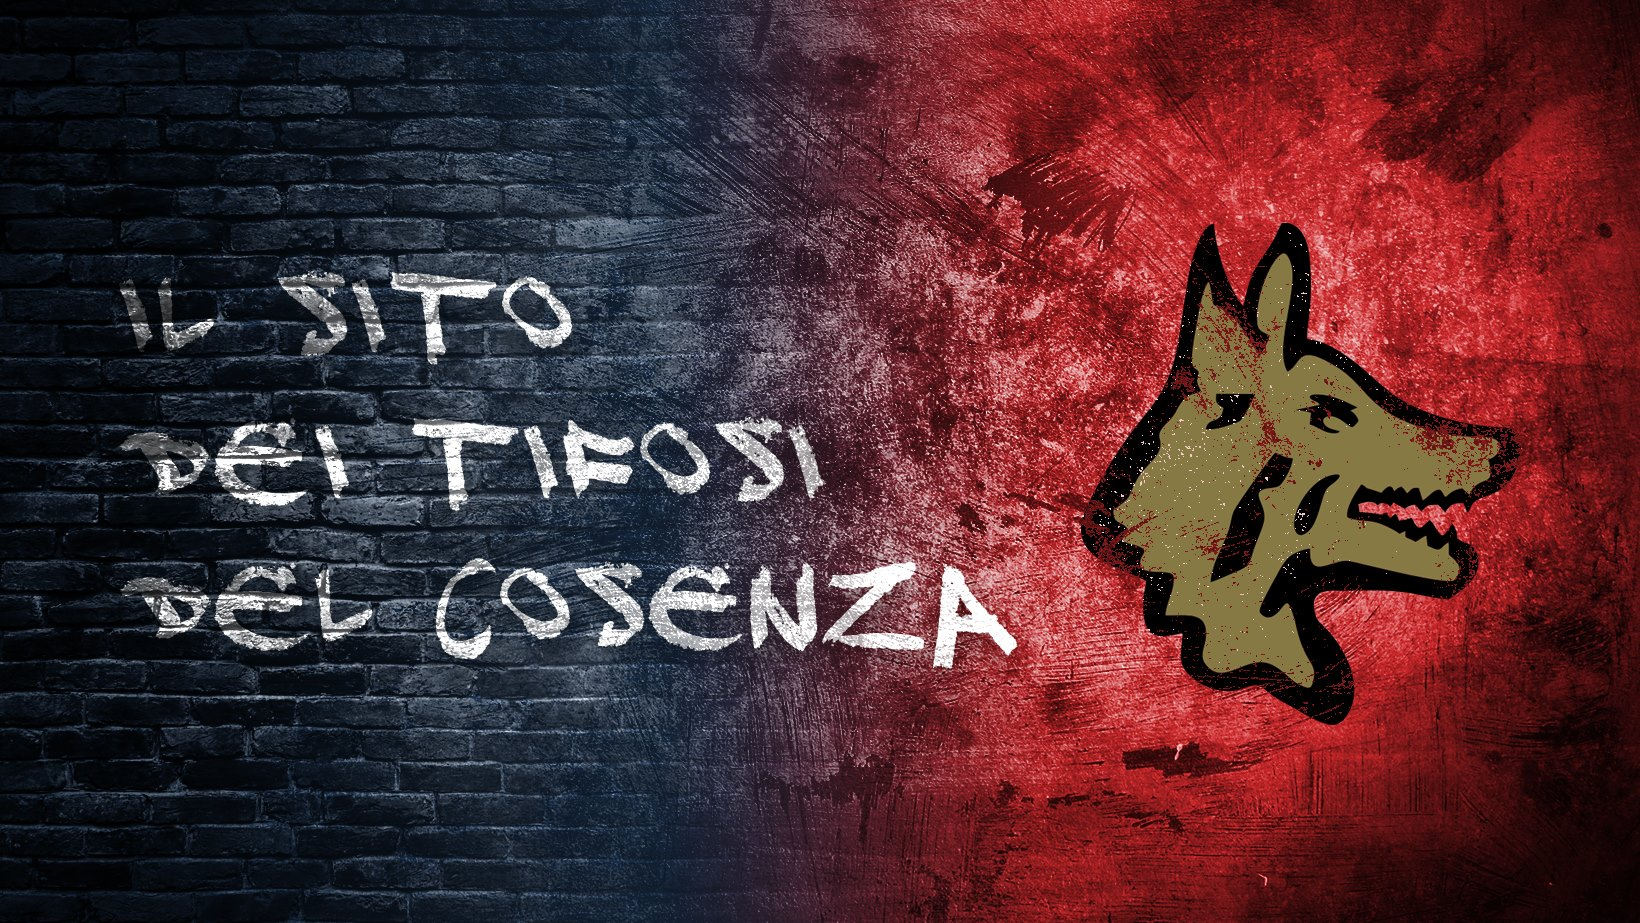 Tifocosenza.it